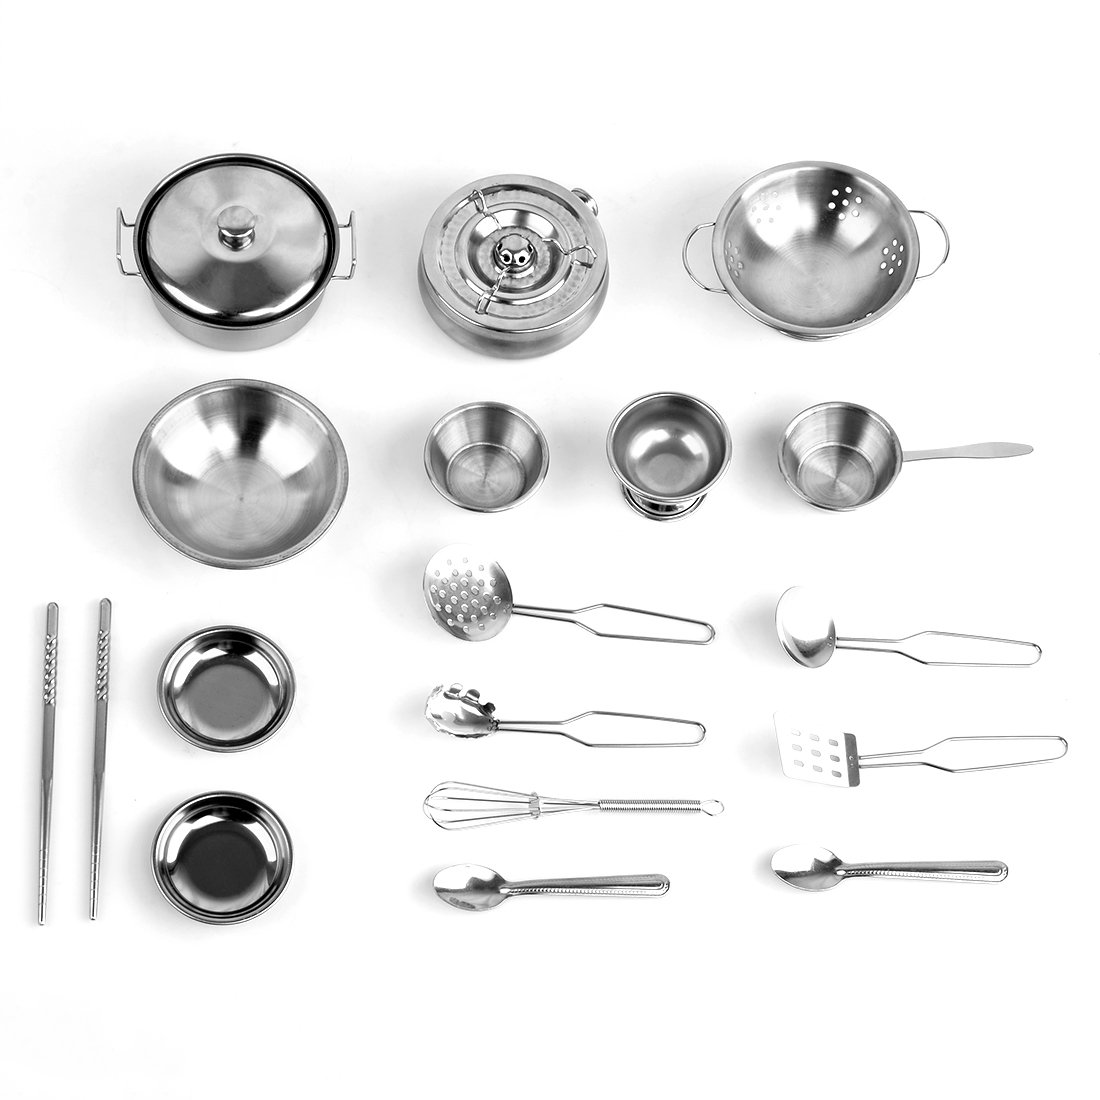 18 Piece Kitchen Cookware Playset, YIFAN Stainless Steel Pretend Play Cooking Toys for Kids - Silver